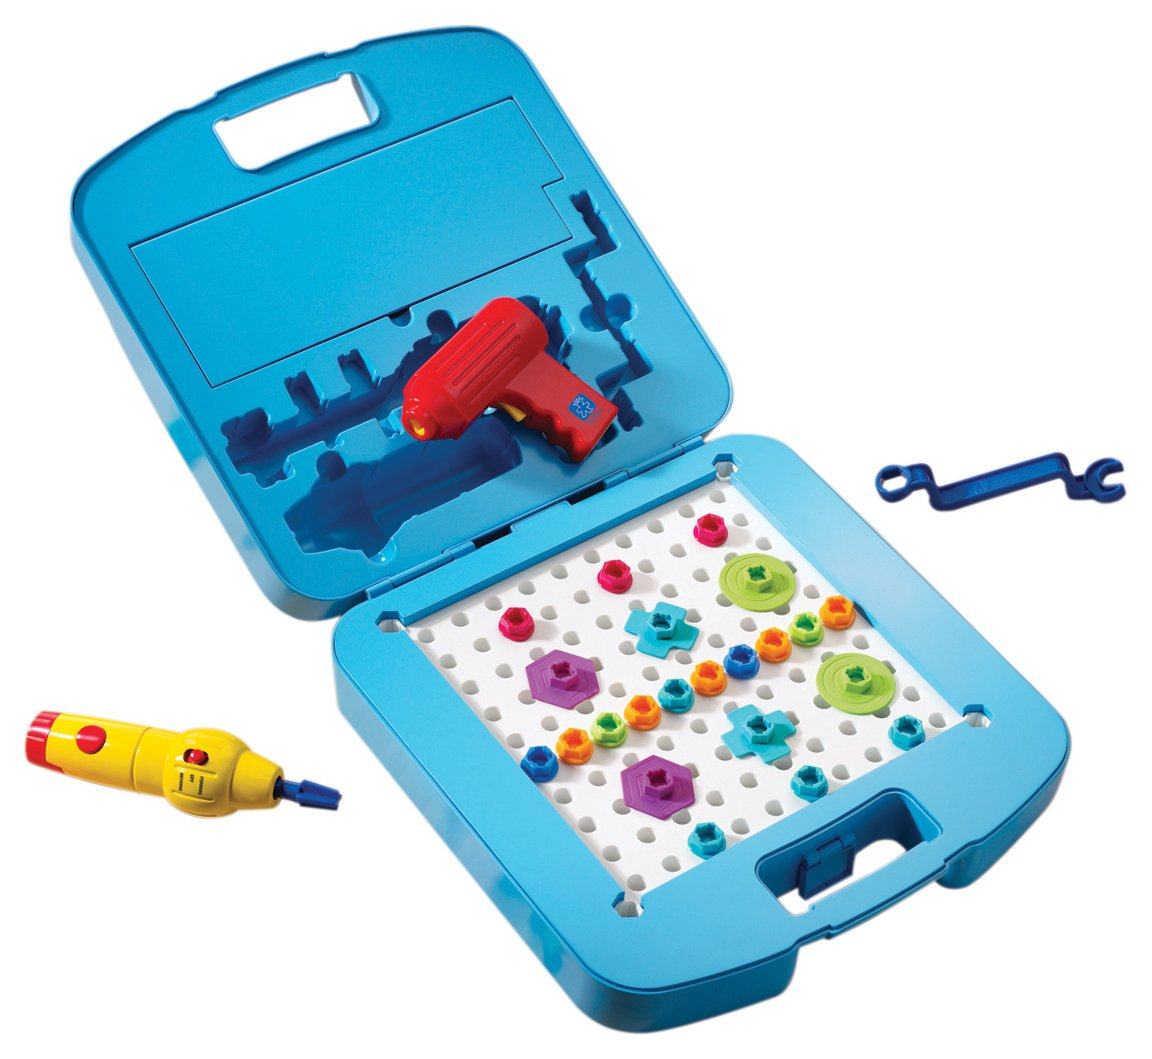 Educational Insights Design & Drill Power Tool Workshop - Drill Toy, STEM & Construction, Building Toy by Educational Insights (Image #2)